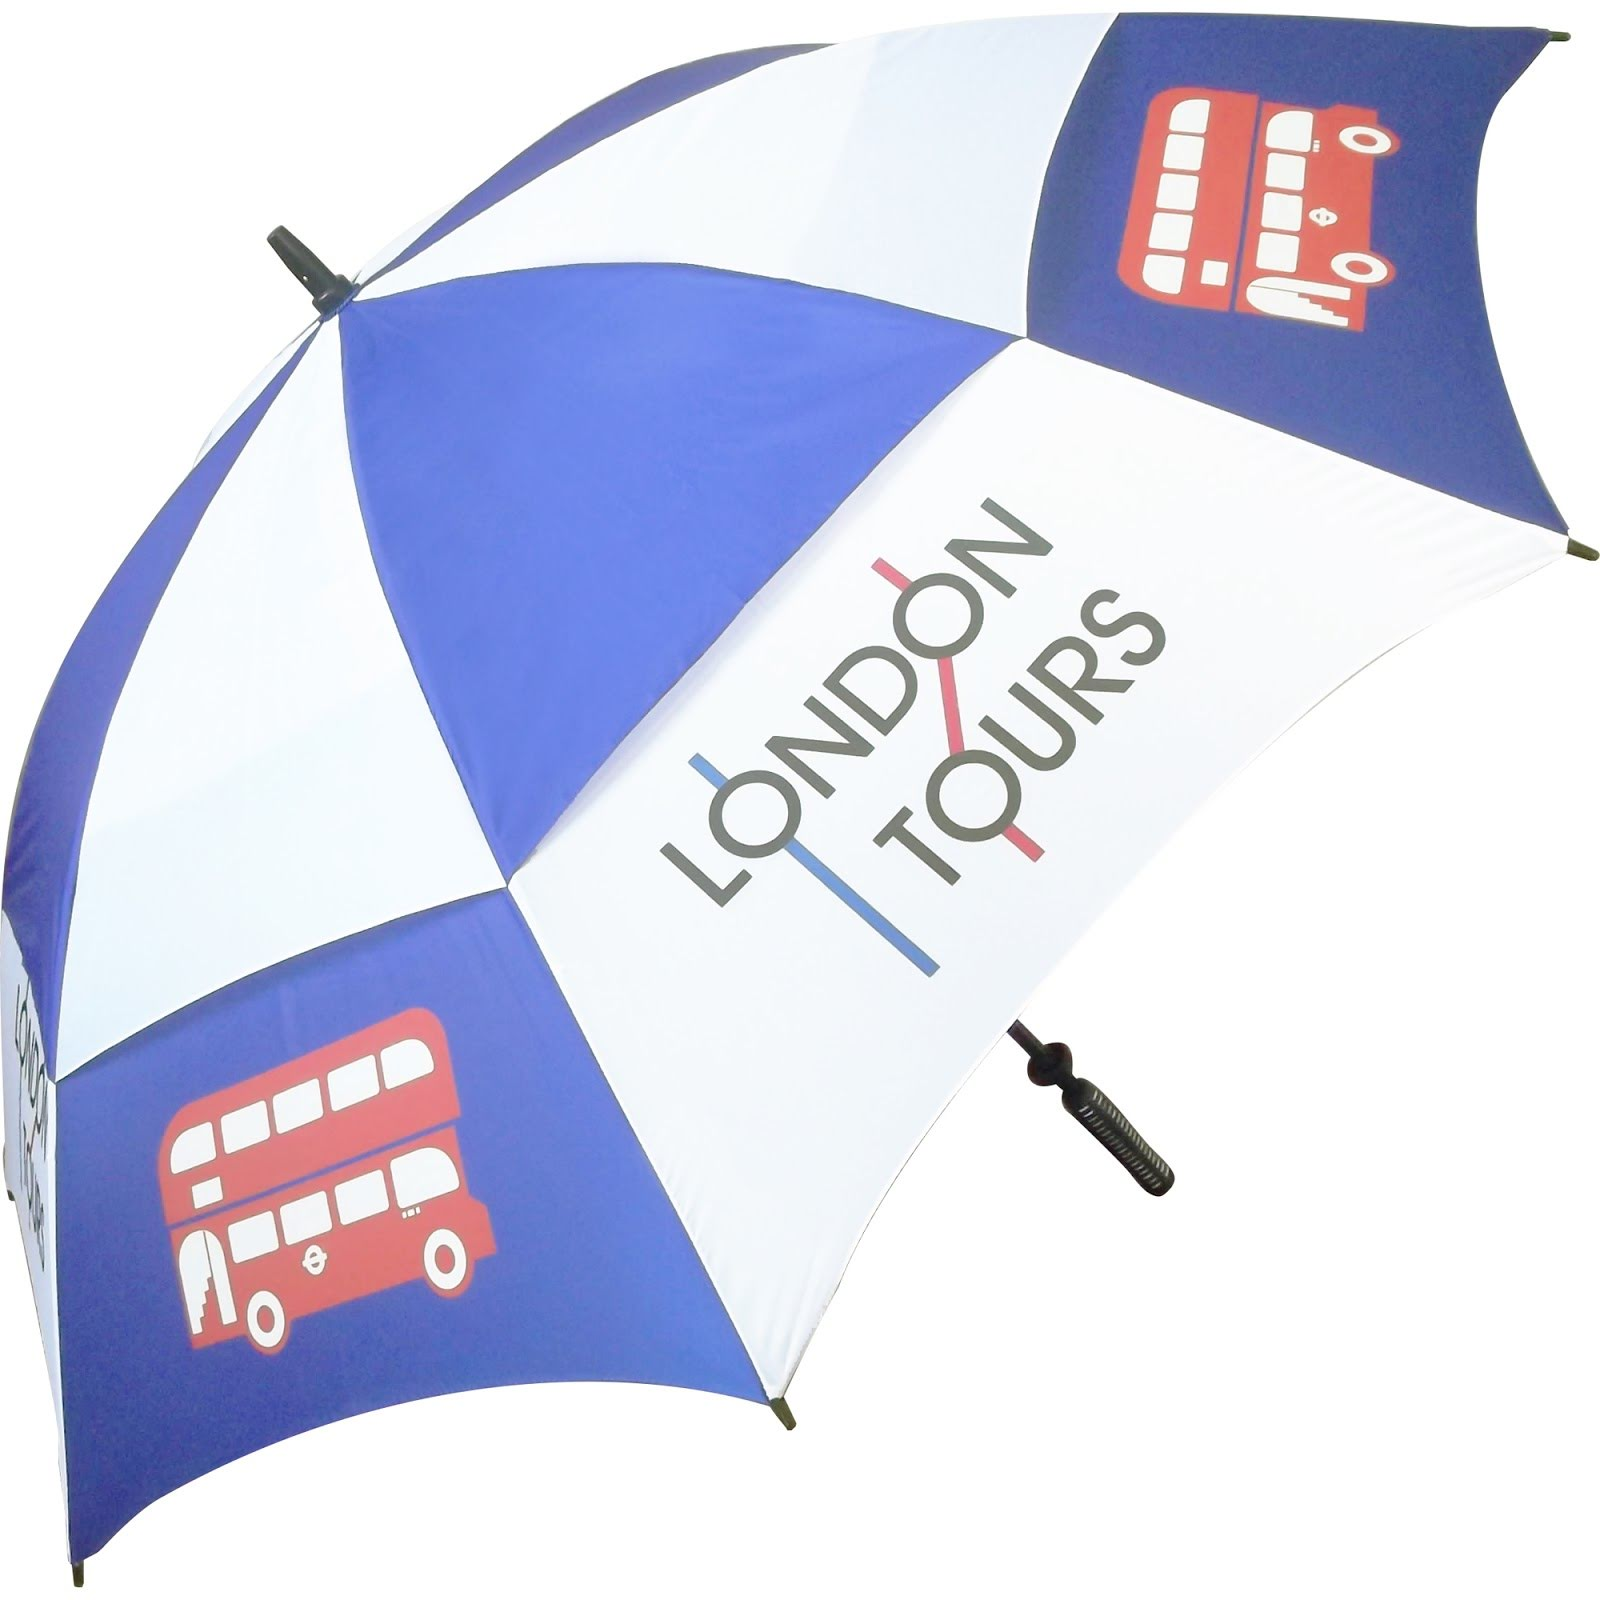 Printed Umbrellas will get your Brand Noticed